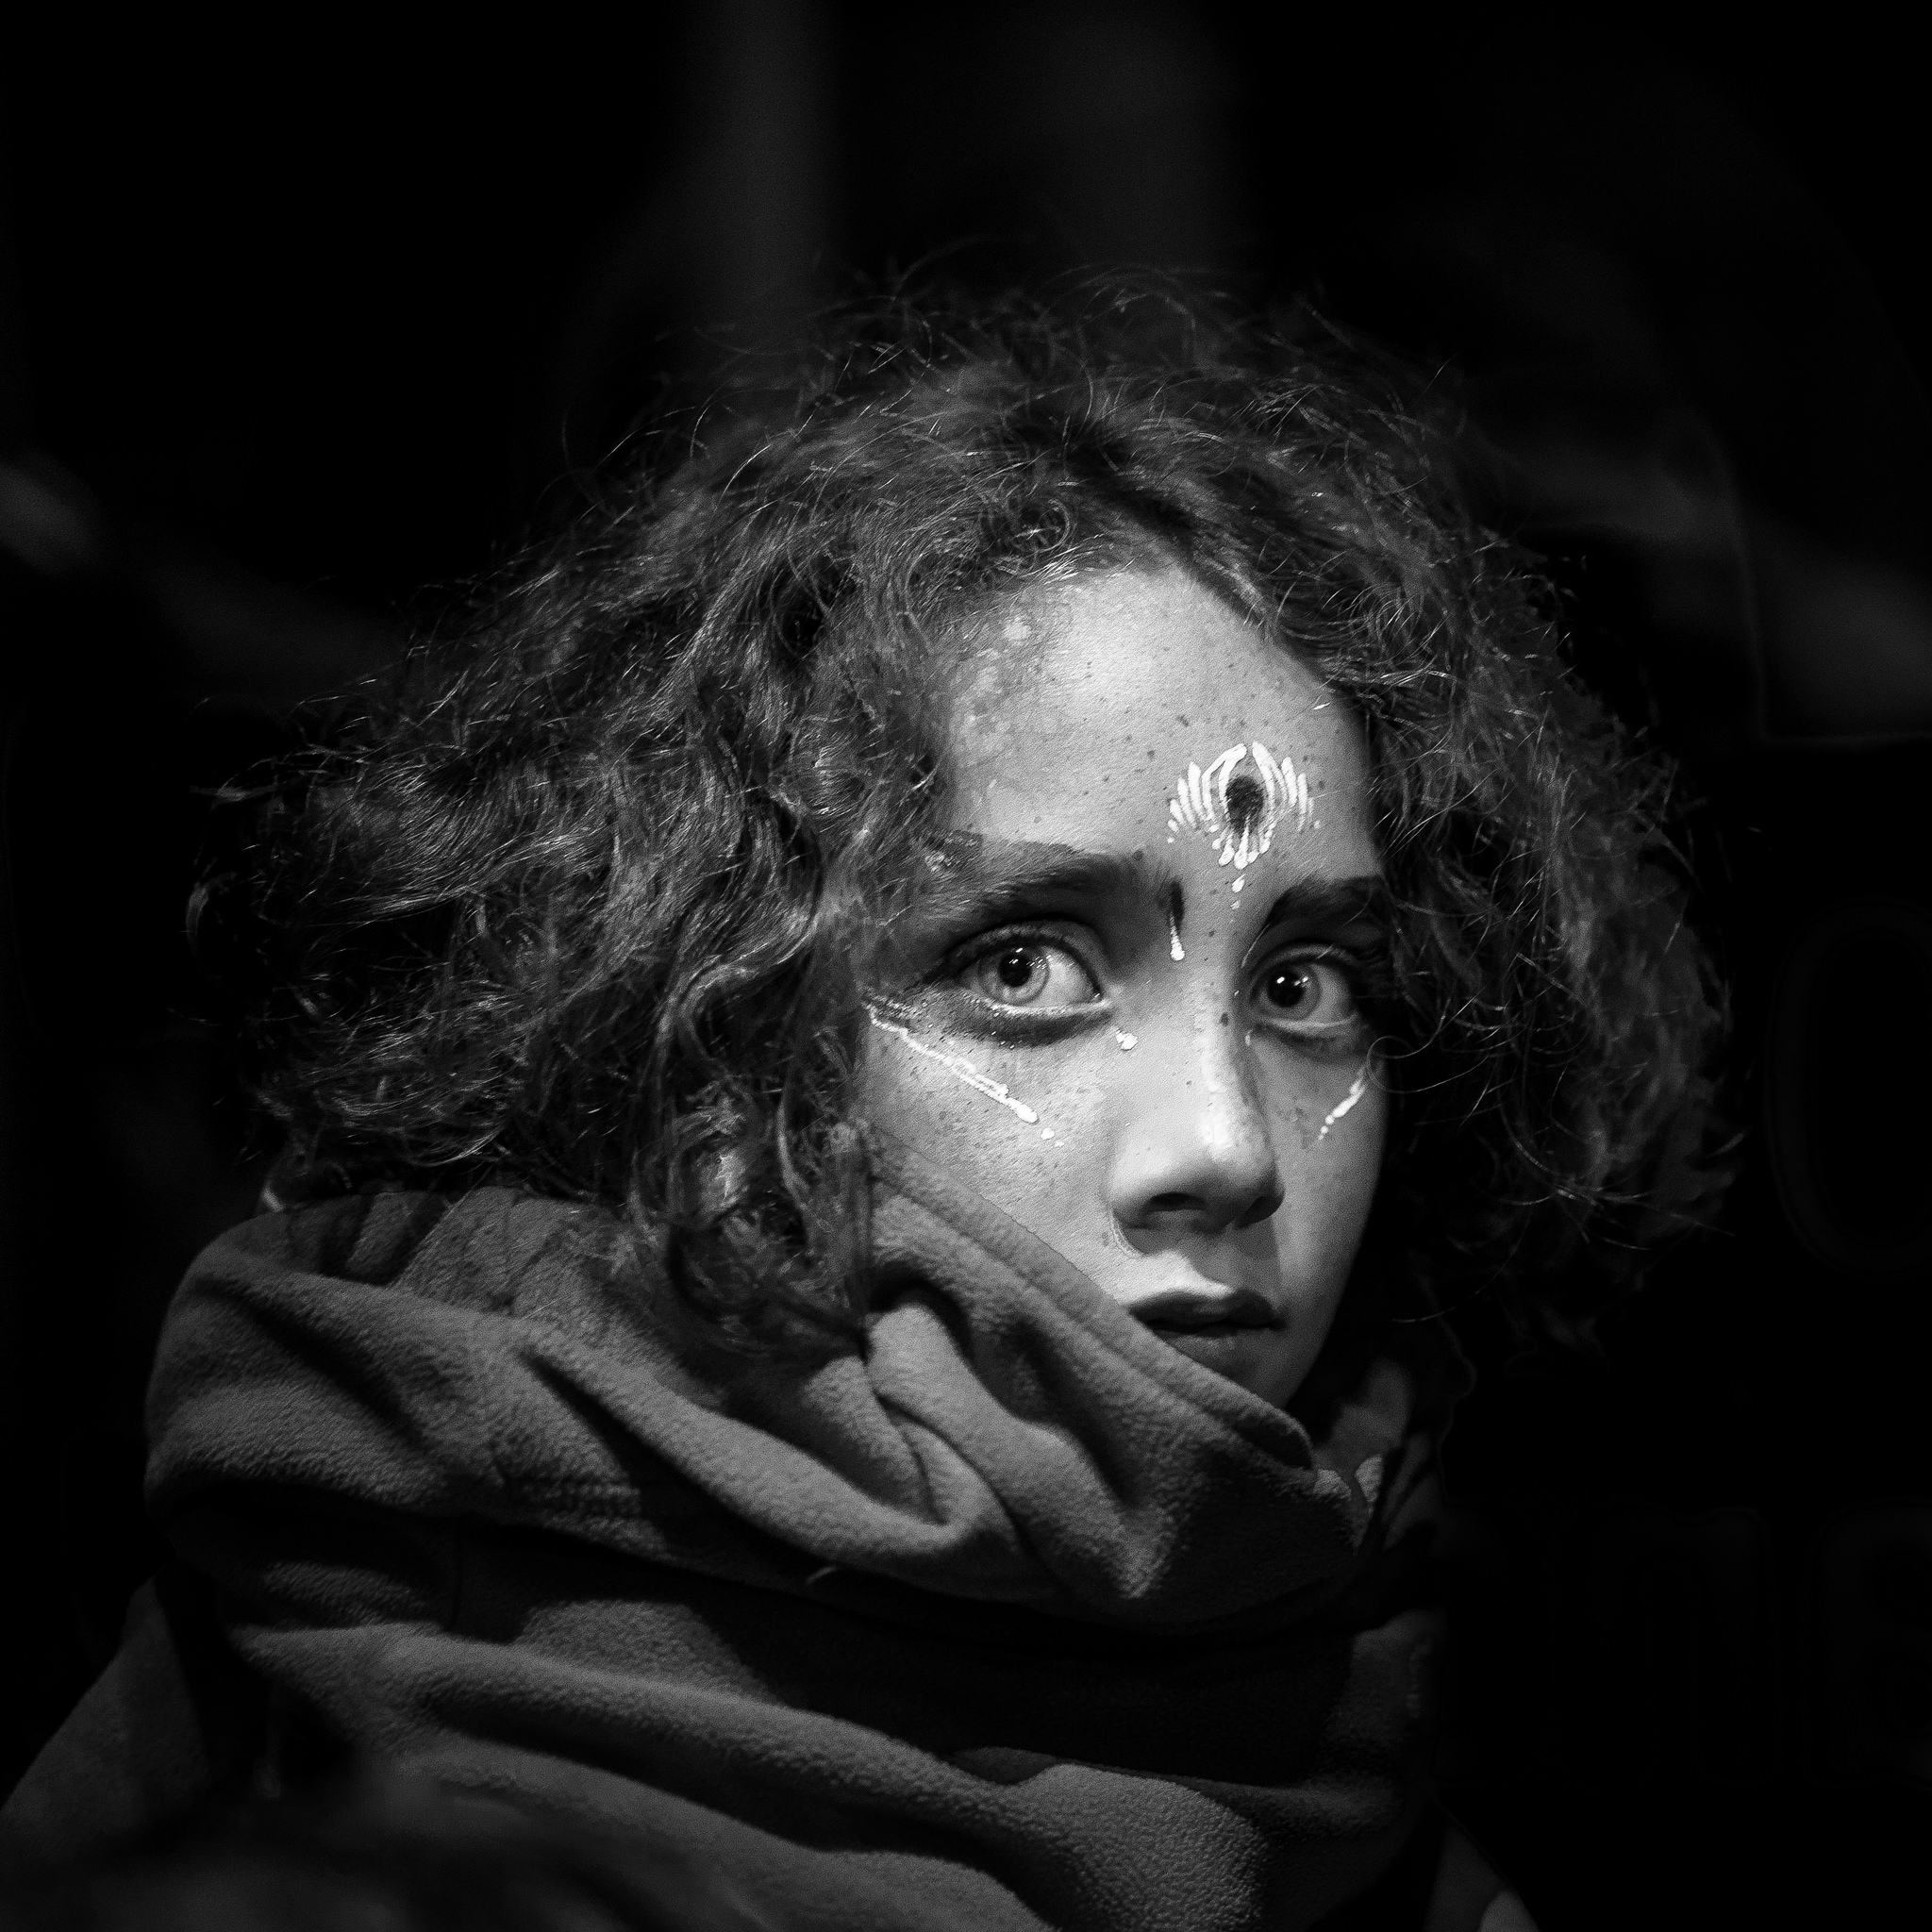 Etienne regis, photographe toulouse, Aurillac, festival, bus, kid, enfant, makeup, maquillage, eyes, noir et blanc black and white